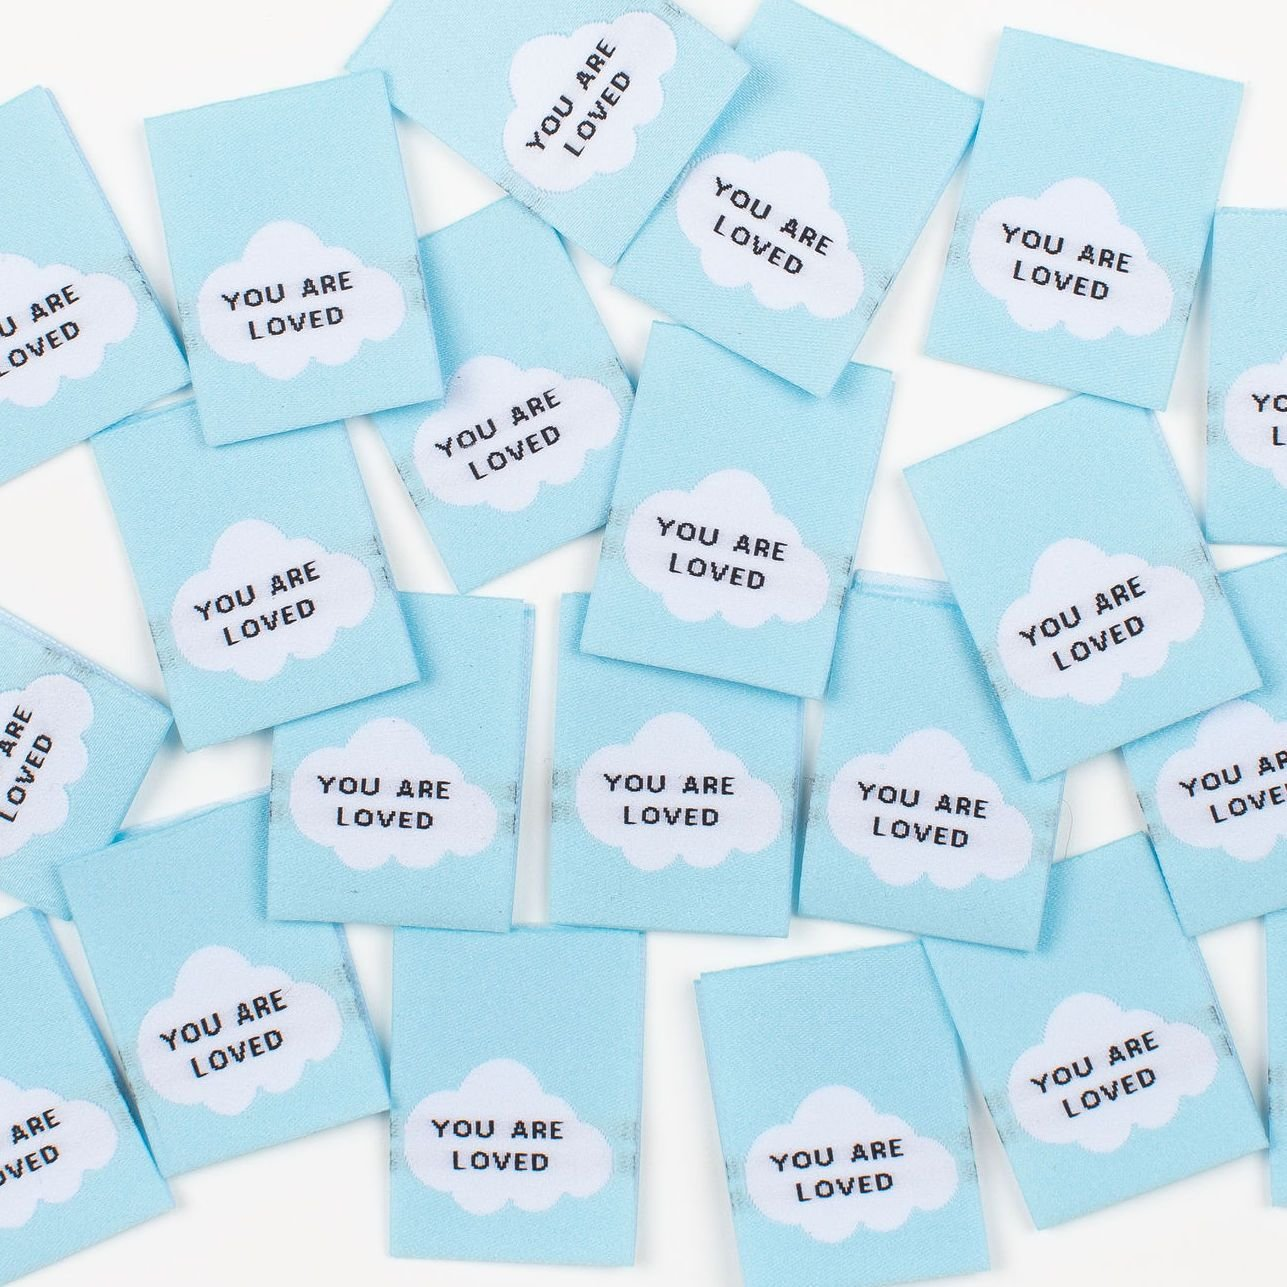 YOU ARE LOVED Woven Sewing Labels by Kylie and the Machine